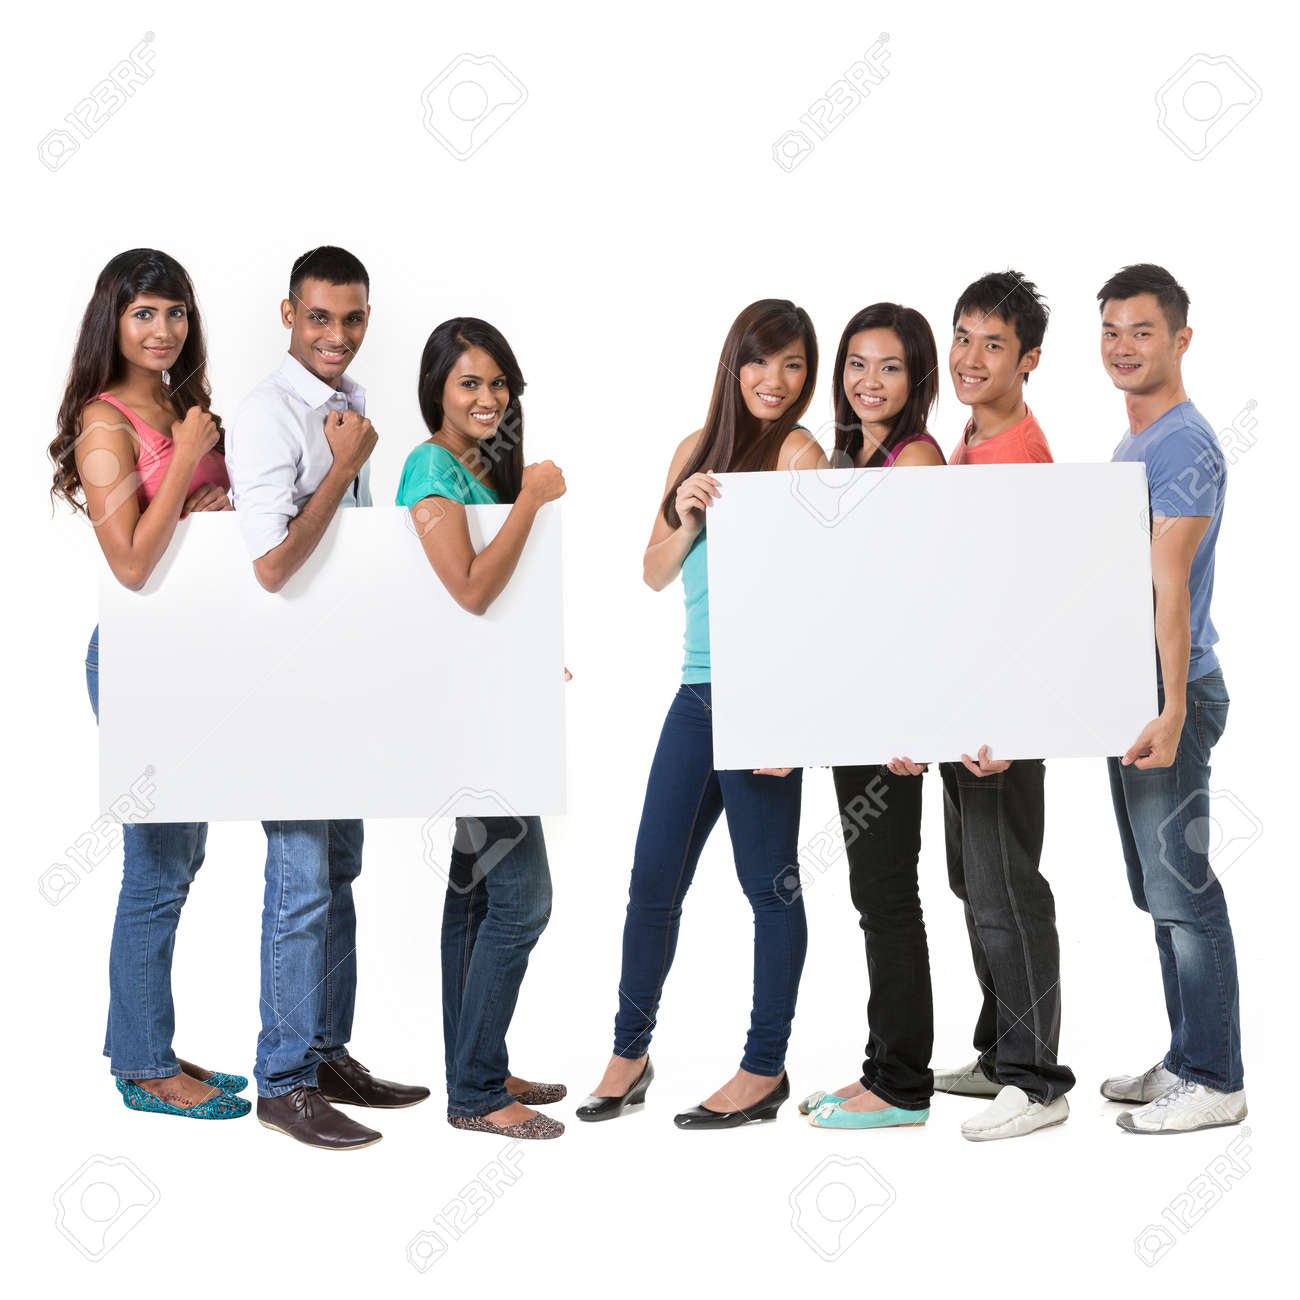 Two Group's of Asian people holding a big banner for your message. Isolated on white background. Indian and Chinese teams holding placards. Stock Photo - 29578957